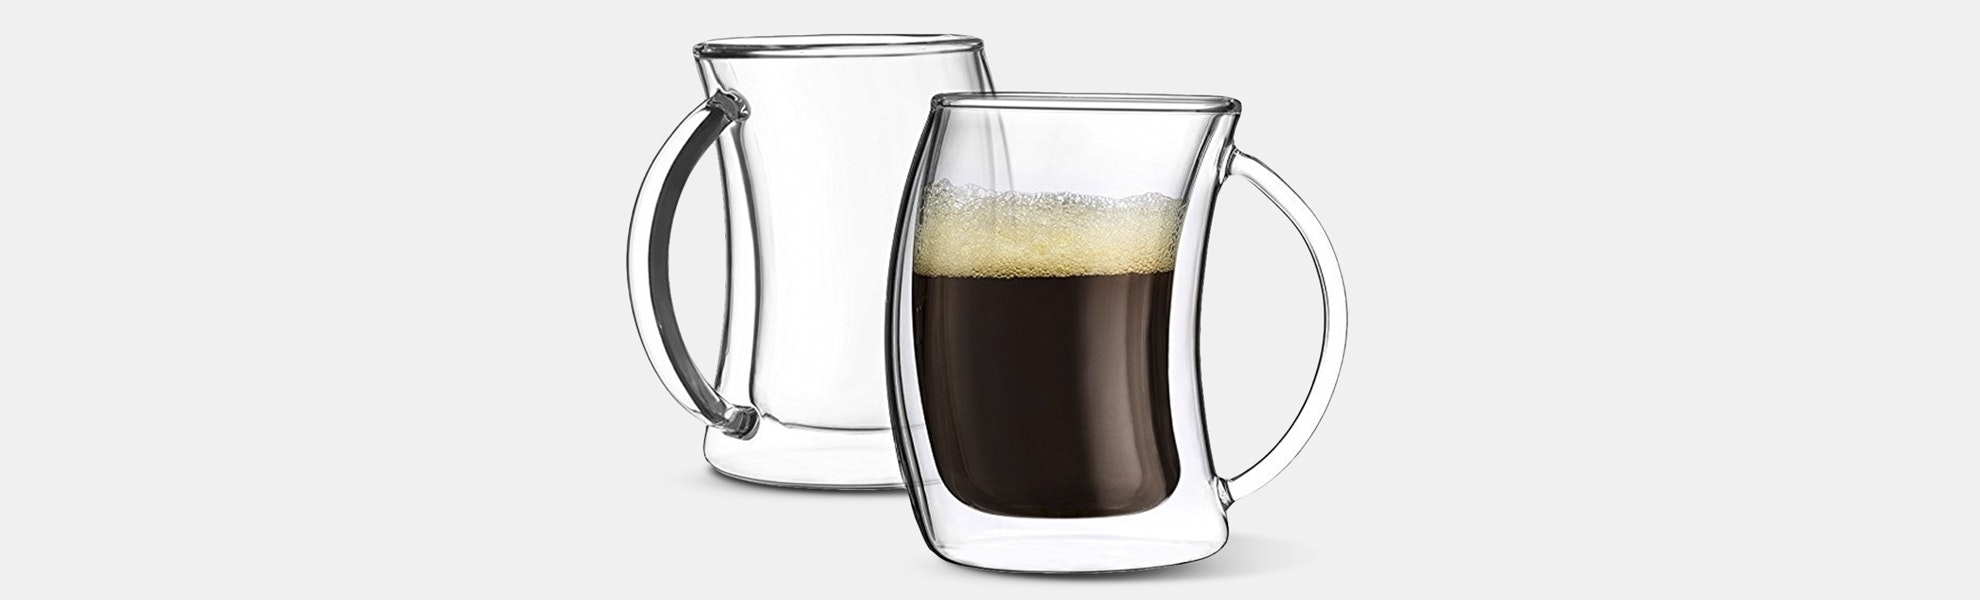 JoyJolt Caleo Double-Wall Mug Sets